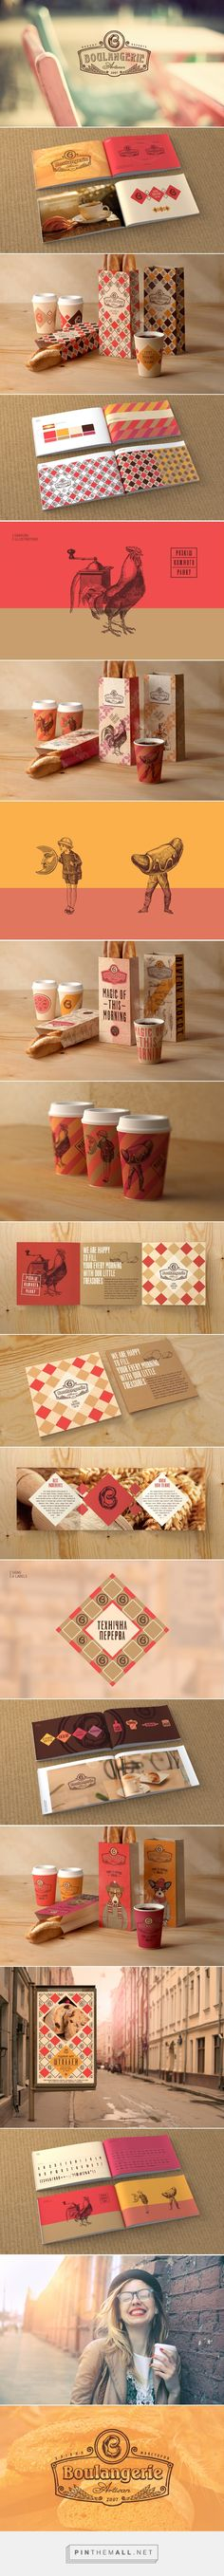 Boulangerie ID on Behance